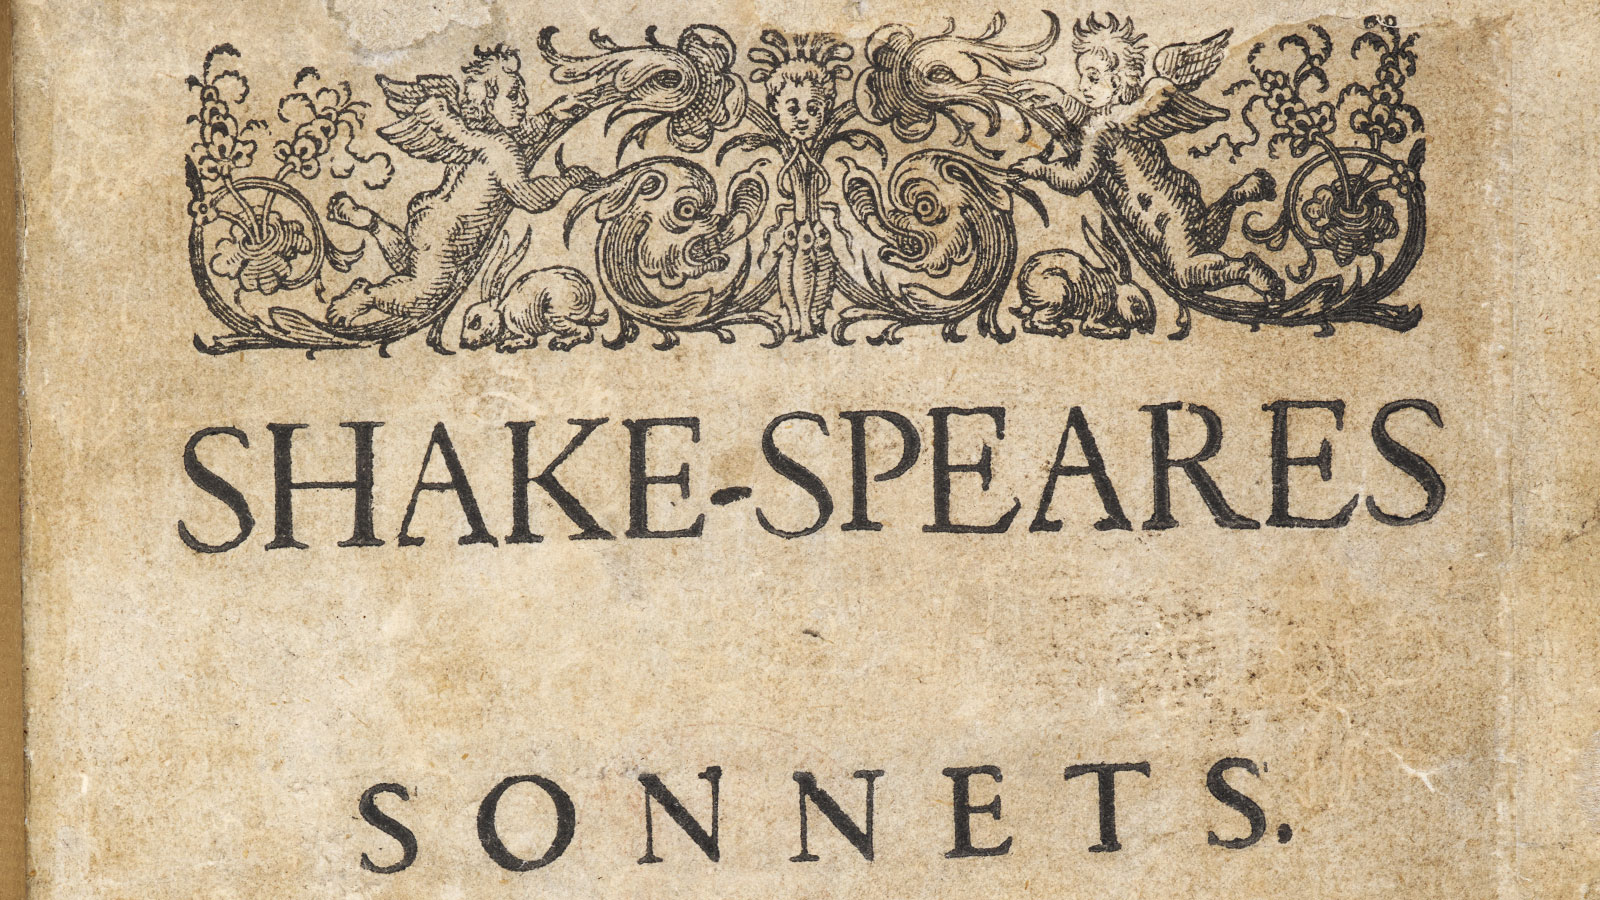 An introduction to Shakespeare's Sonnets - The British Library